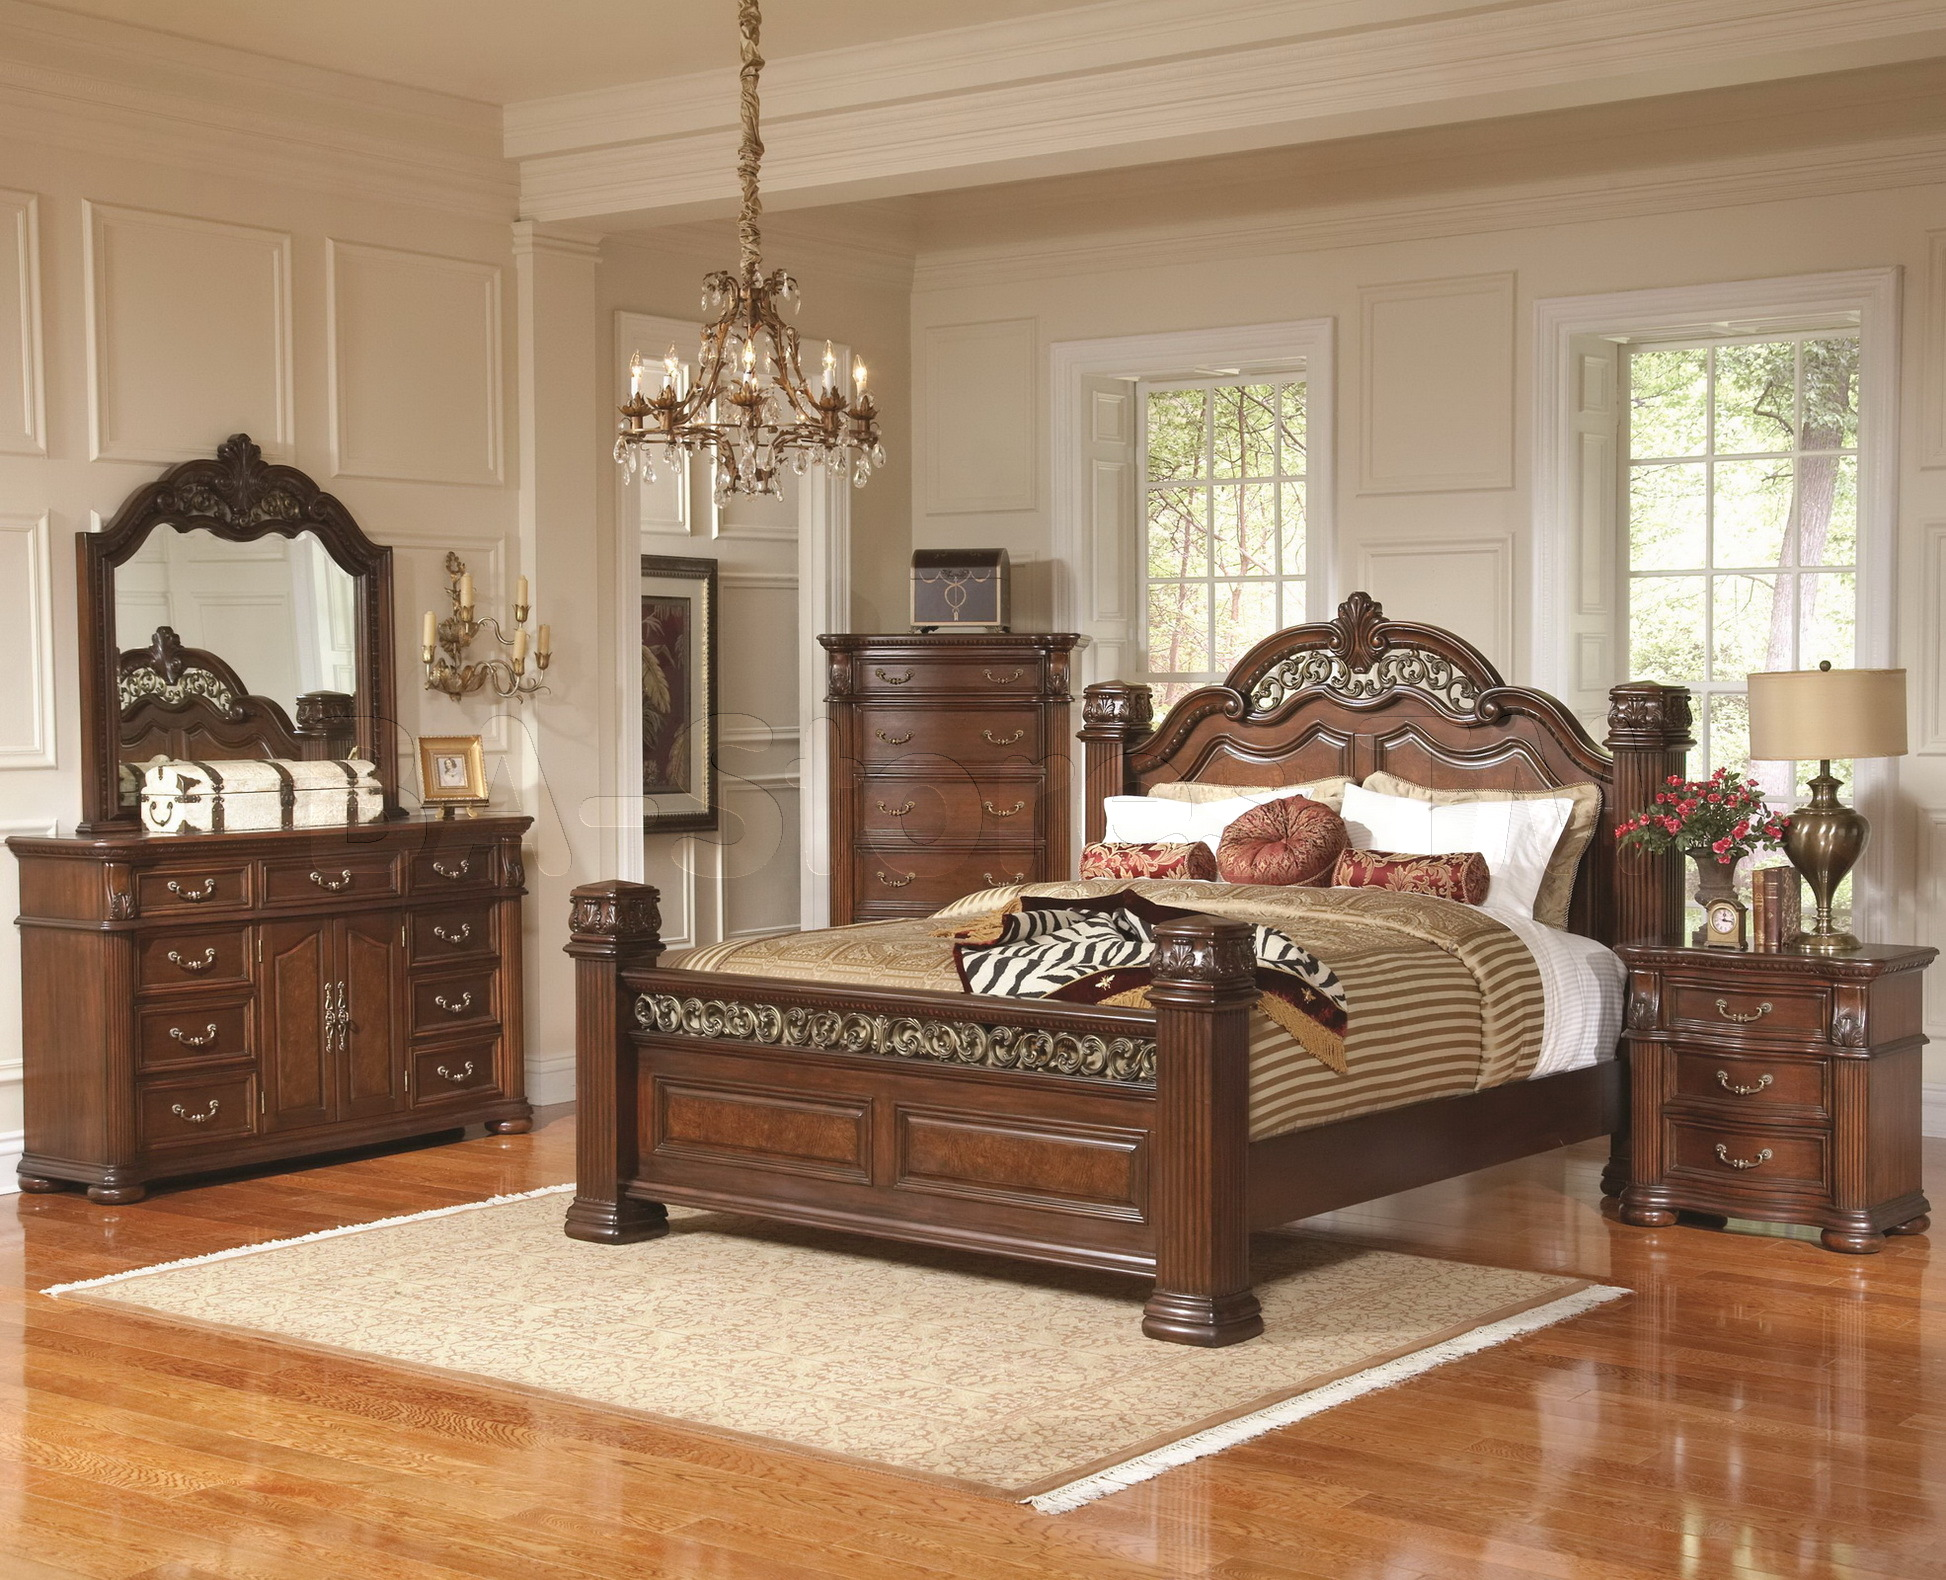 Royal Indian Bedroom Set